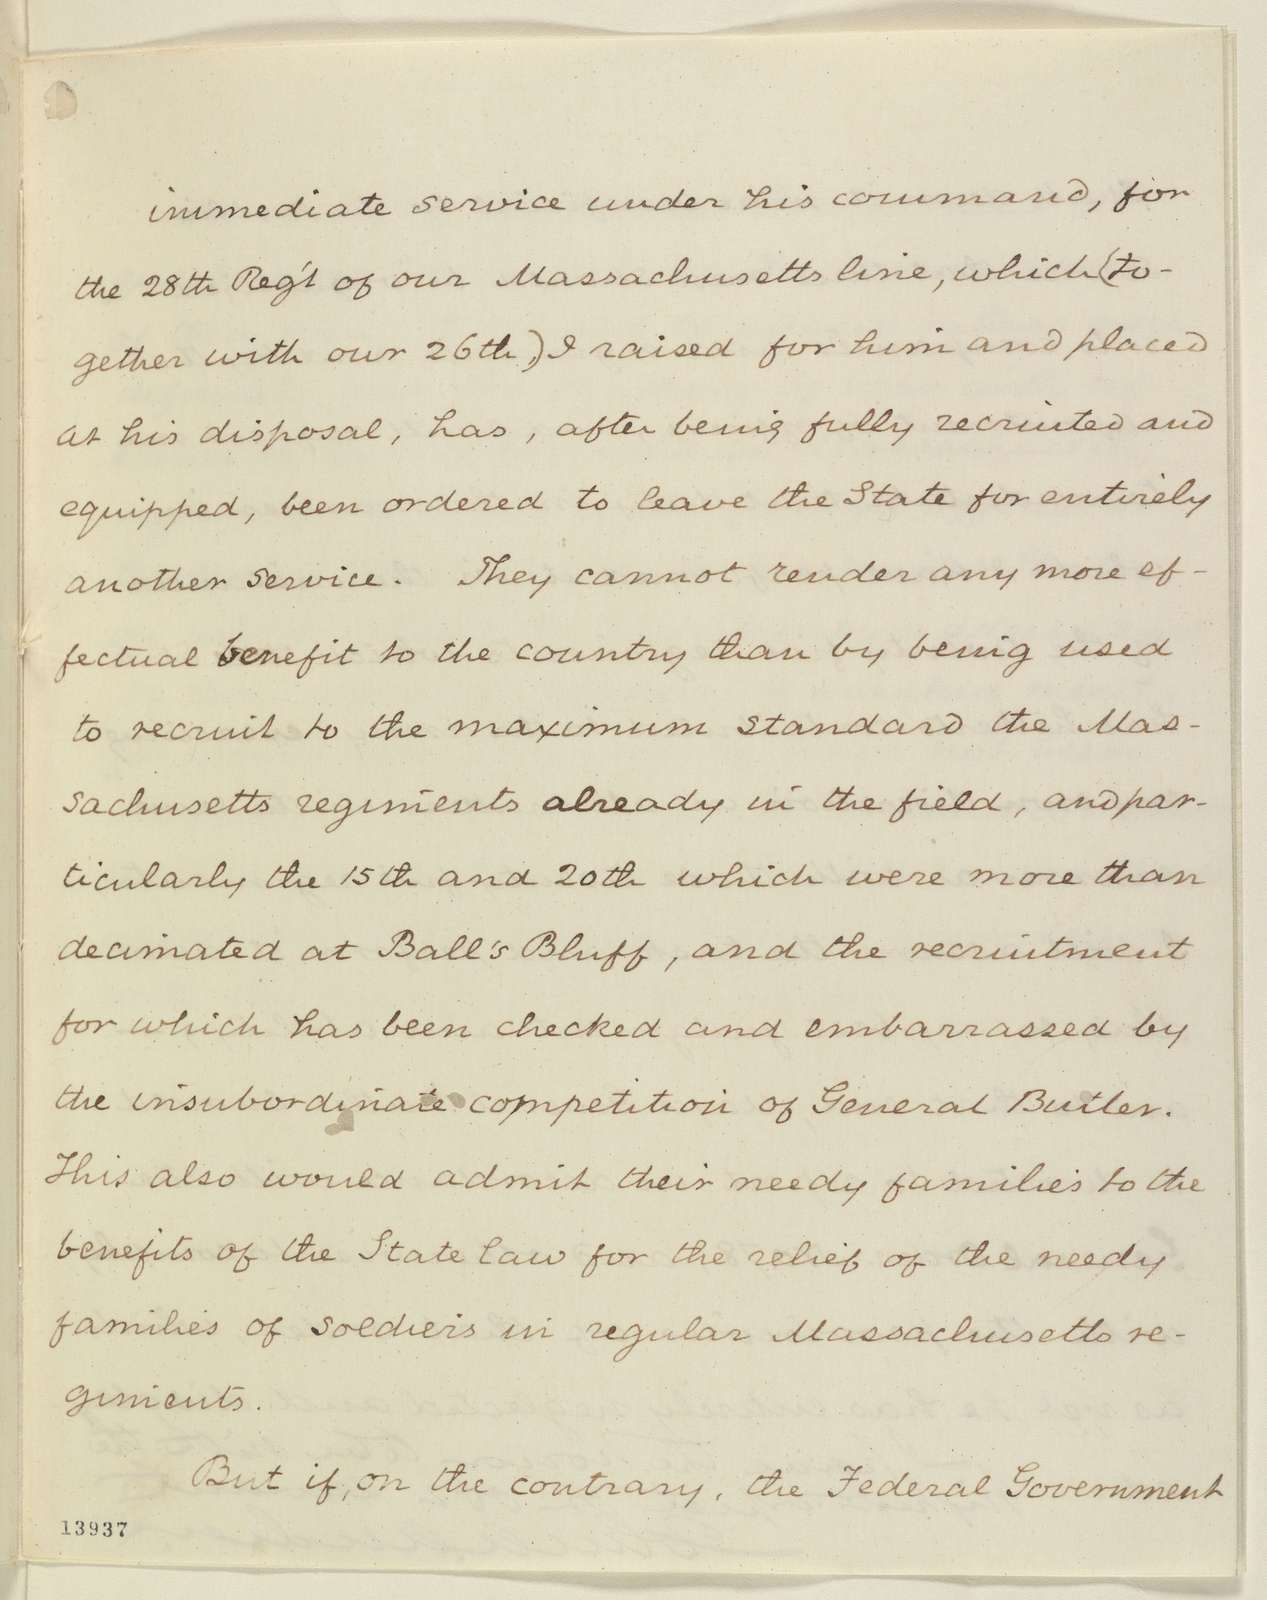 Abraham Lincoln papers: Series 1. General Correspondence. 1833-1916: John A. Andrew to Abraham Lincoln, Saturday, January 11, 1862 (Military affairs)